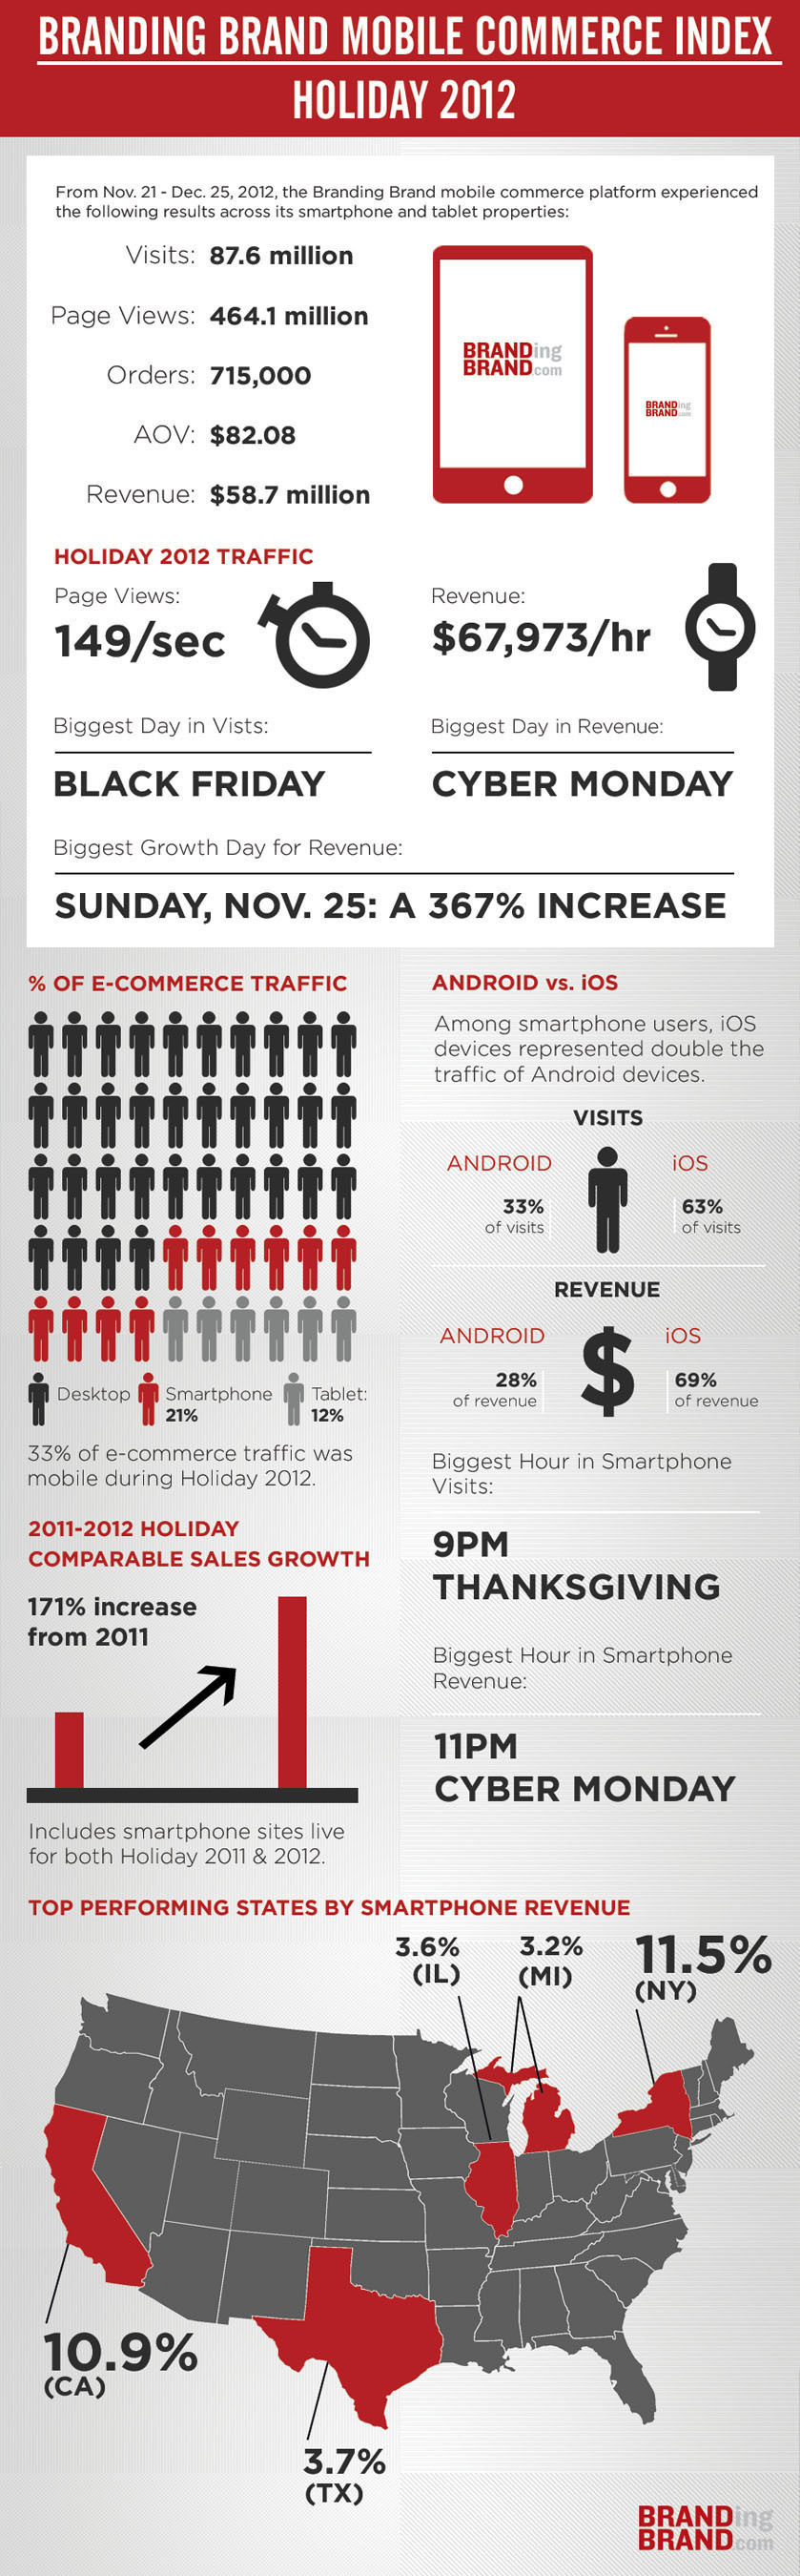 Infographic: Branding Brand Mobile Commerce Index - Holiday 2012 Mobile Trends.  (PRNewsFoto/Branding Brand)